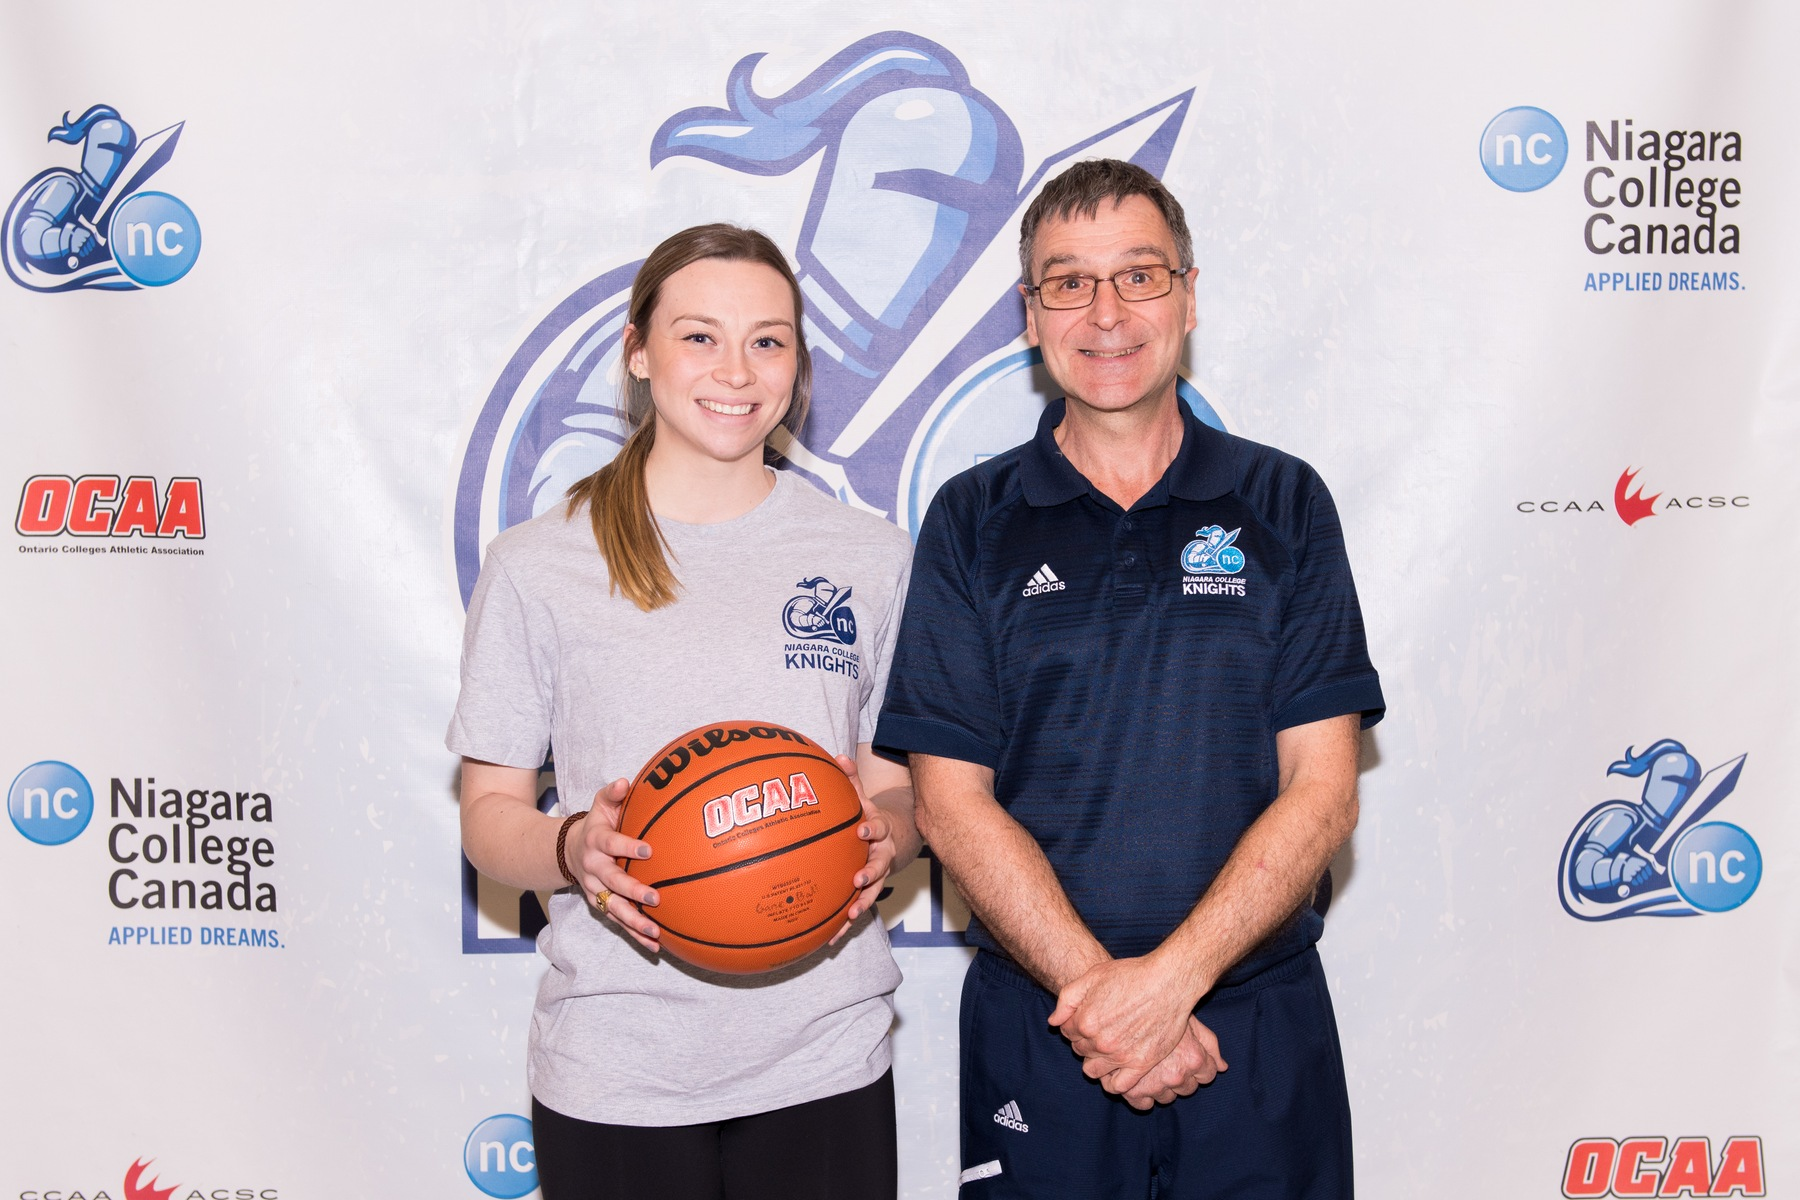 NEWS: St. FX standout Courtney Kilyk joins women's basketball